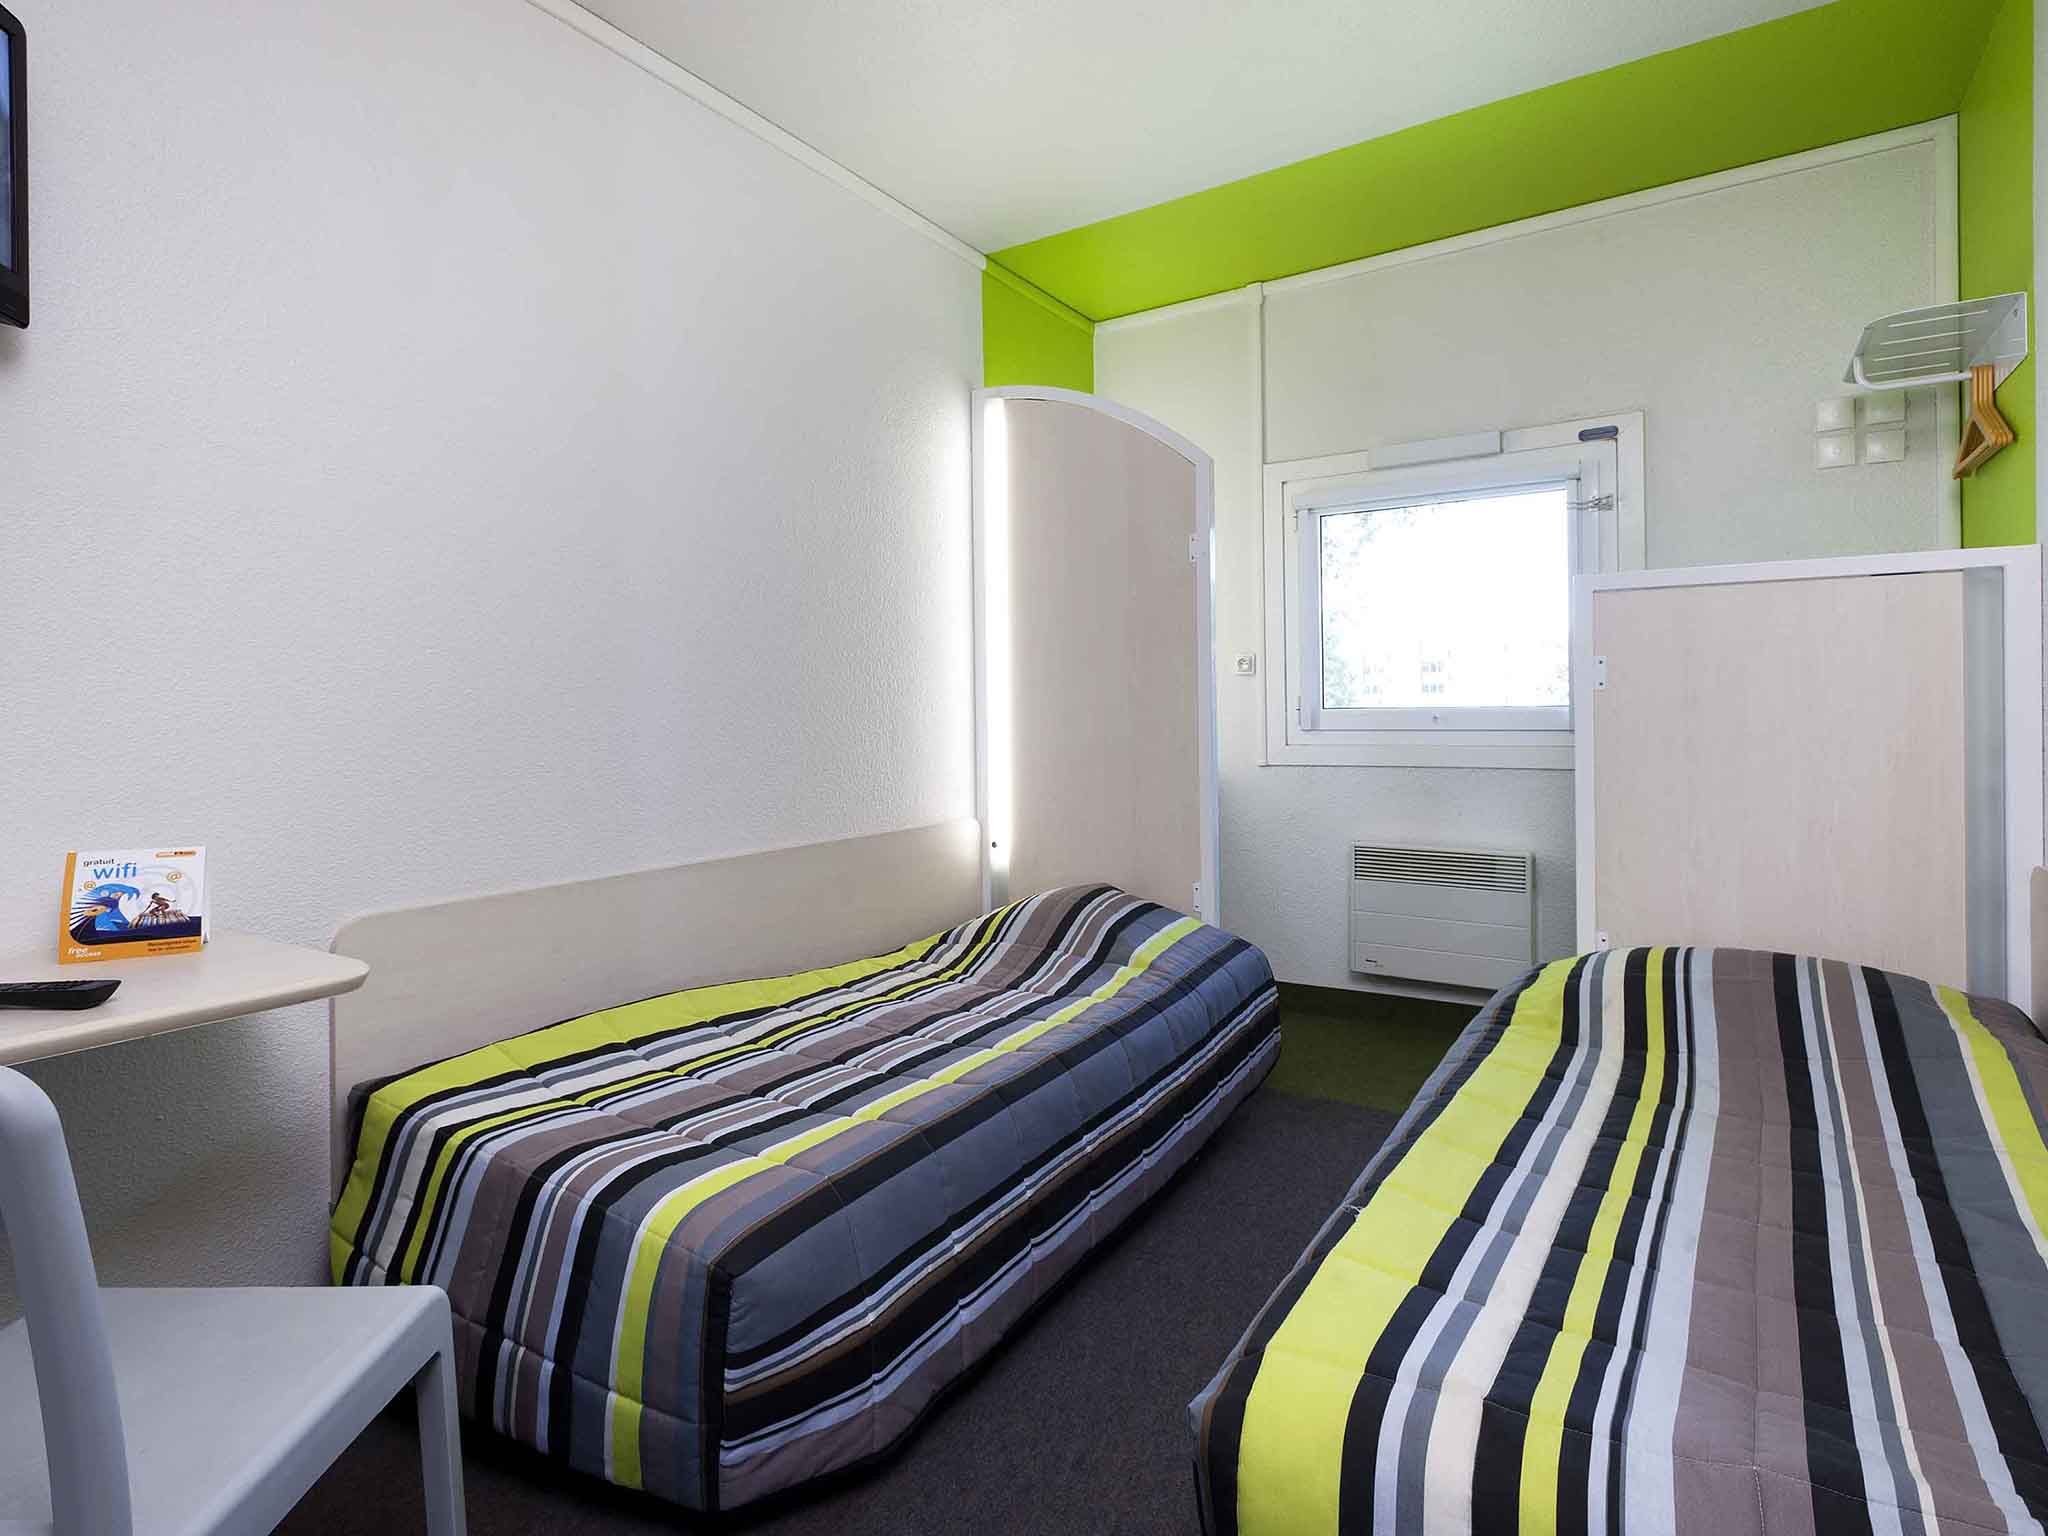 Hotel – hotelF1 Angers Ouest Beaucouzé